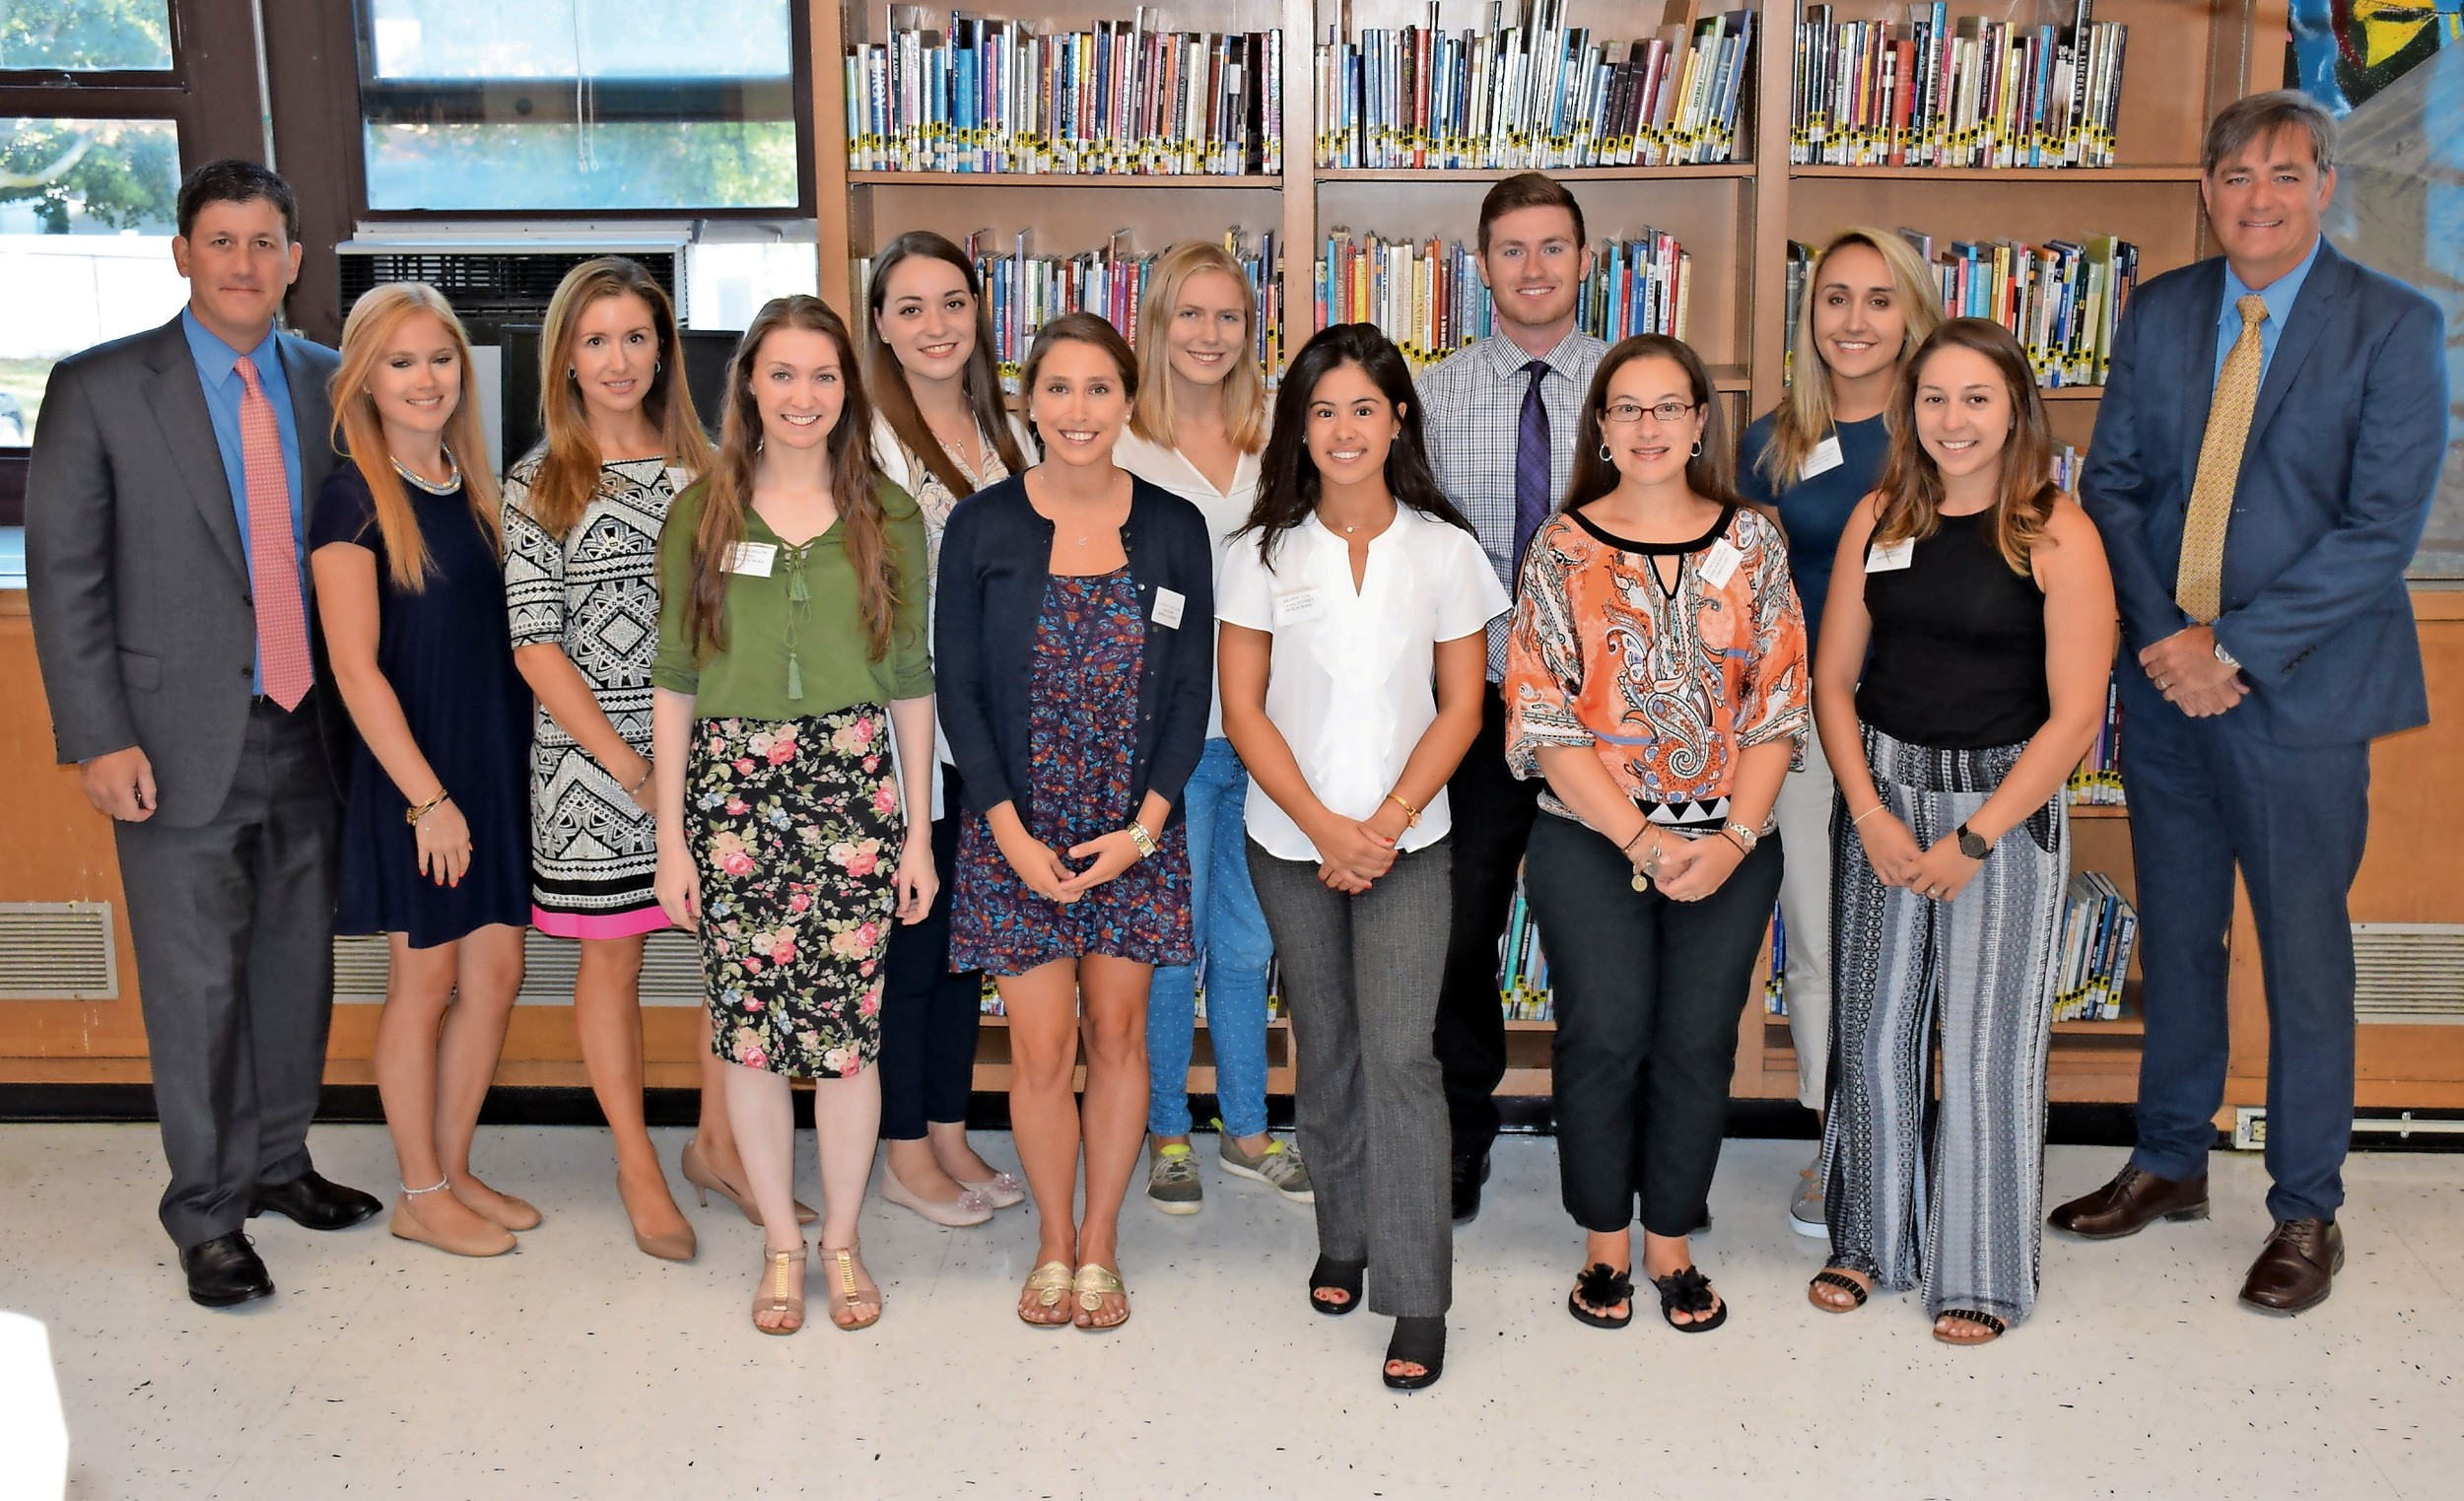 Dr. Marc Ferris, far left, Wantagh's assistant superintendent for instruction, and Superintendent John McNamara, far right, welcomed the district's new teachers during orientation on Aug. 28.